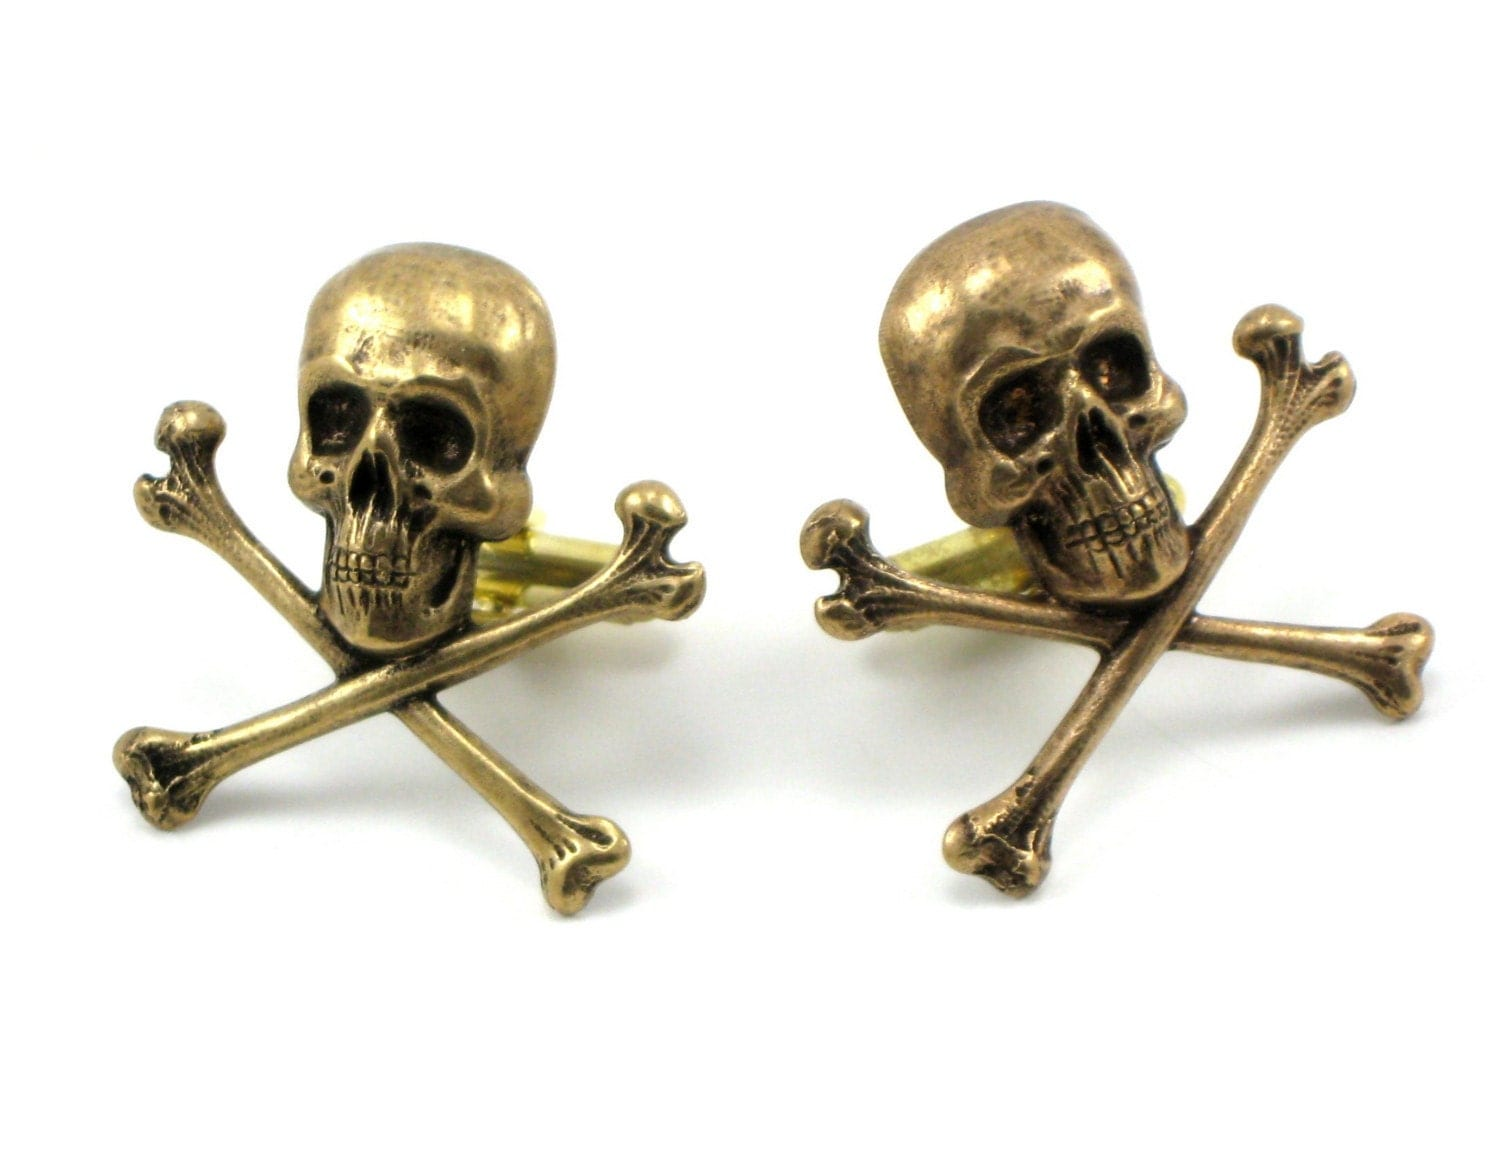 ANTIQUED BRASS PIRATE SKULL and CROSSBONES CUFF LINKS